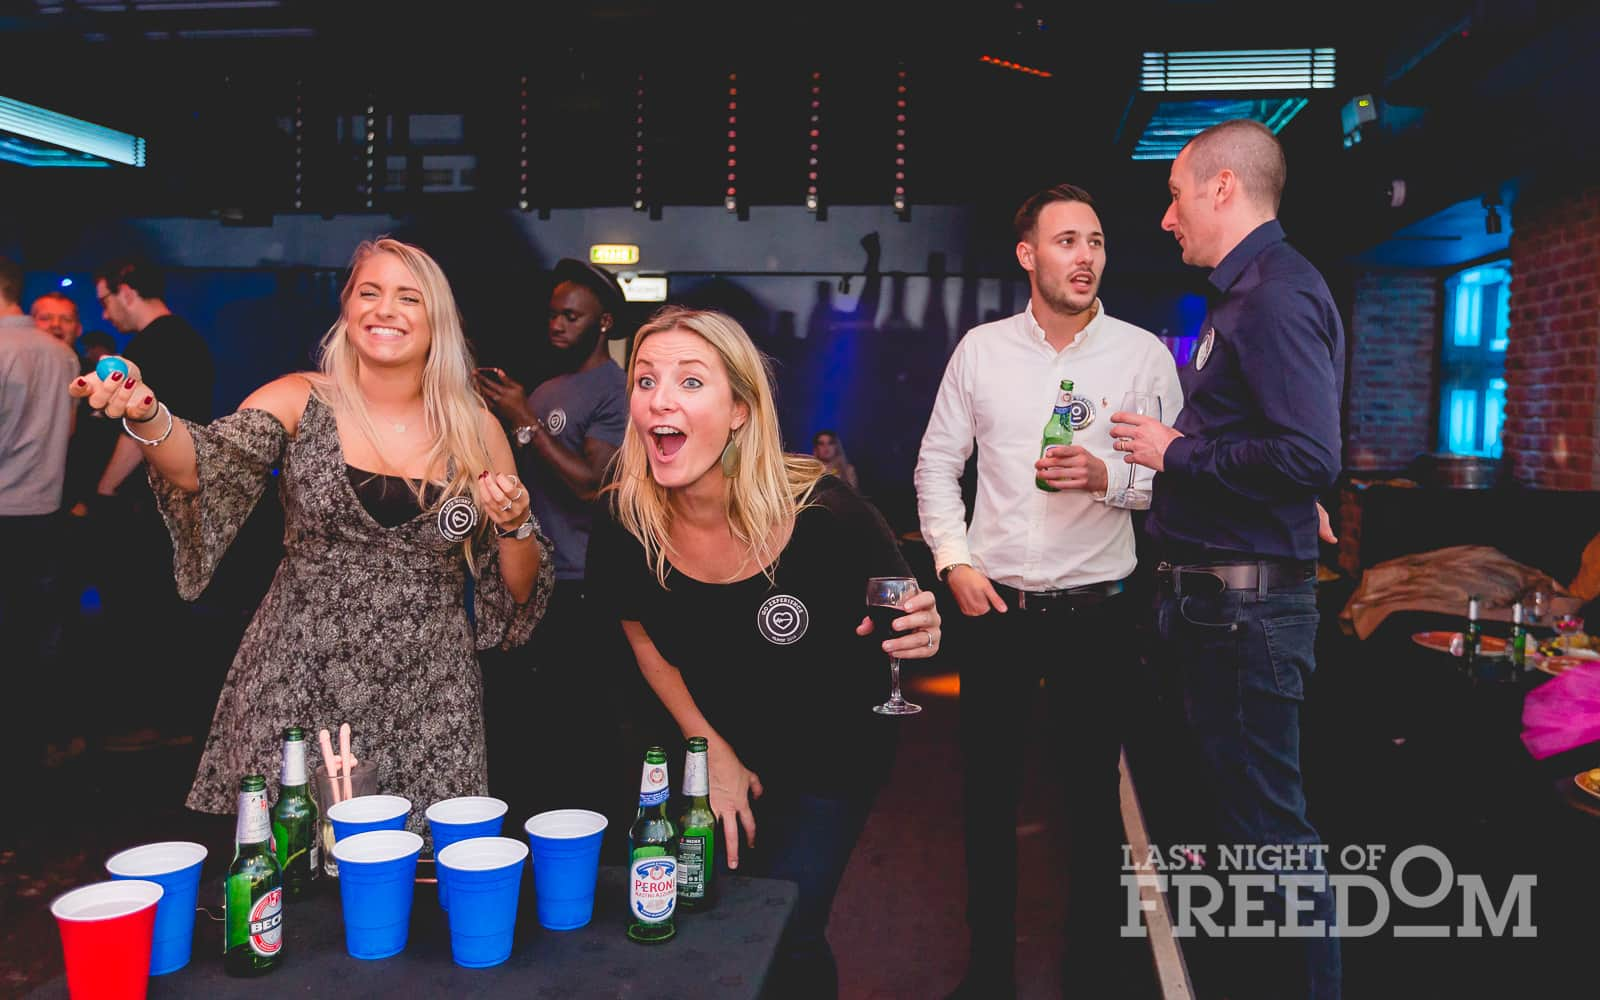 Two women playing beer pong in a bar, with two men chatting in the background